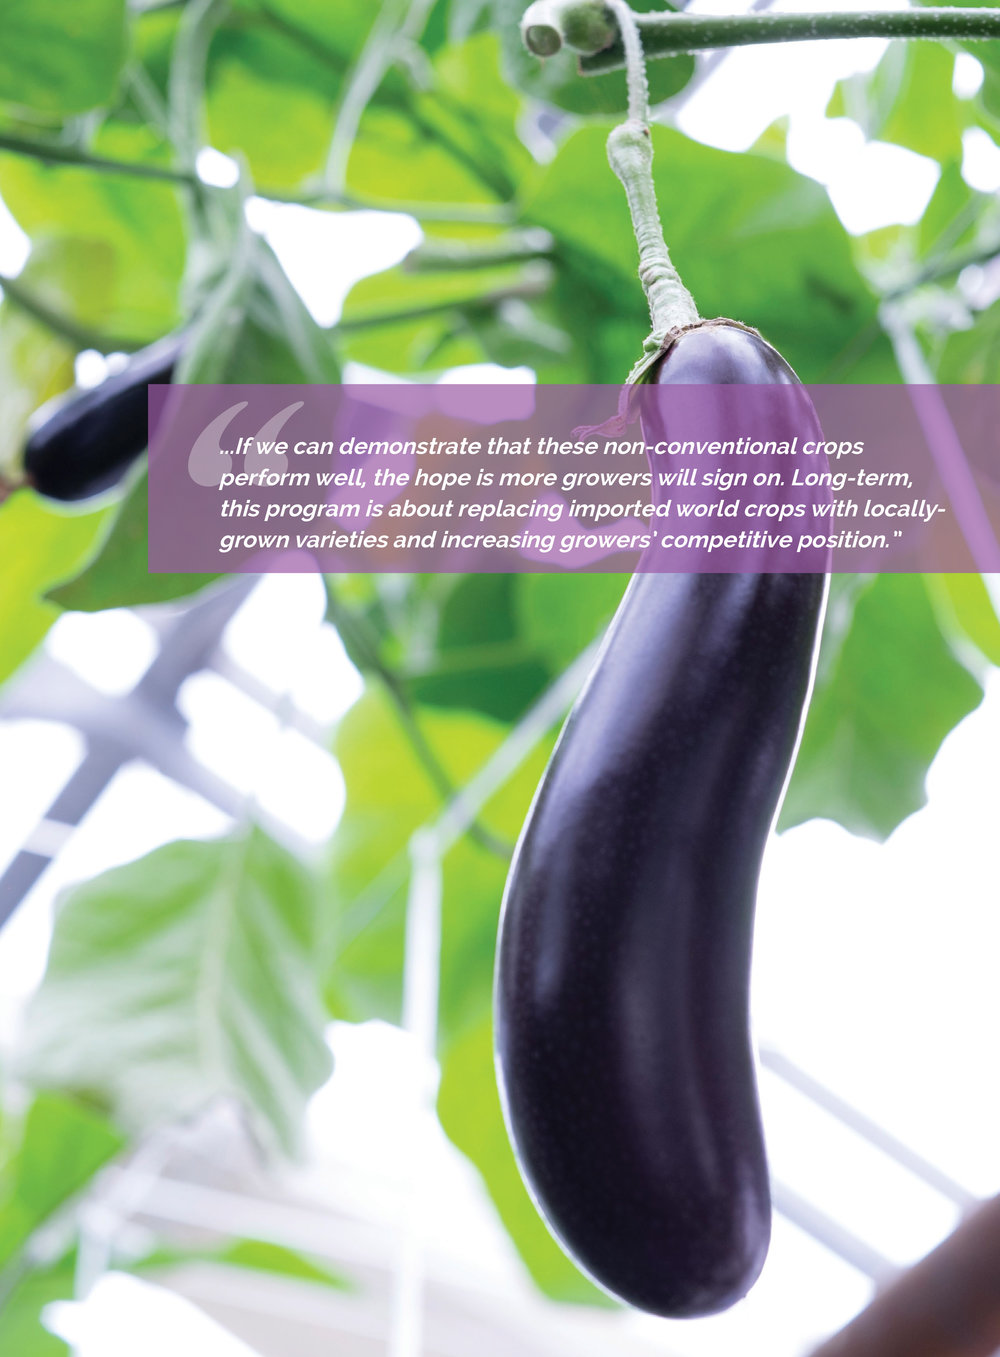 Marta-Hewson-Advertising-eggplants-Innovation-Report-Vineland-Research.jpg